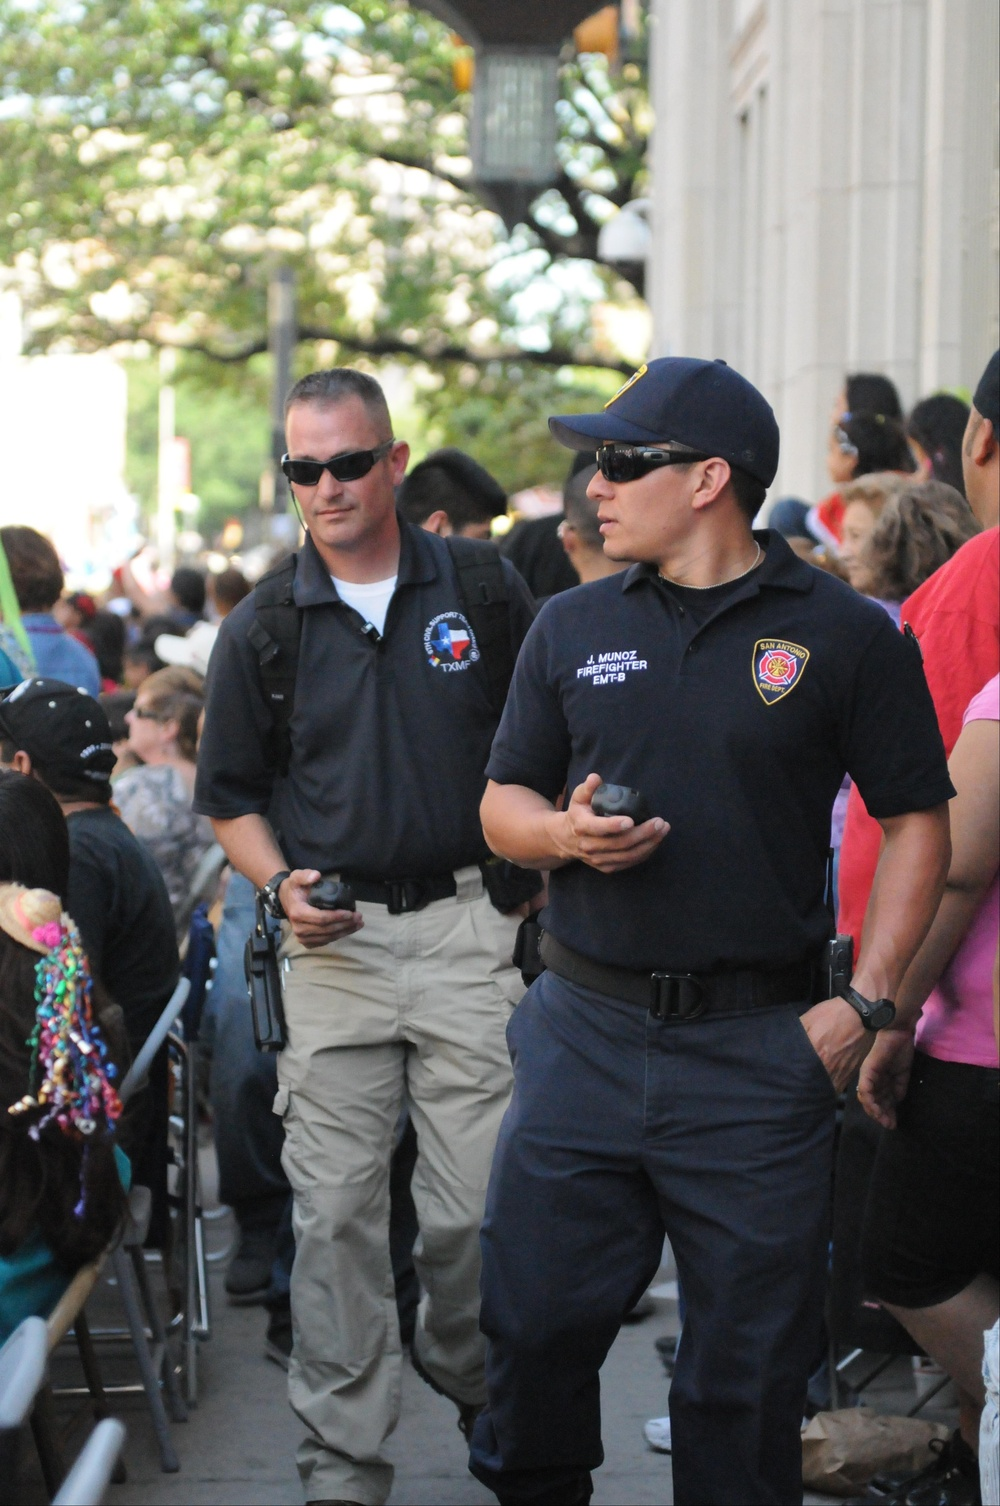 6th Civil Support Team supports San Antonio Fire Department during the 2011 Battle of Flowers Parade